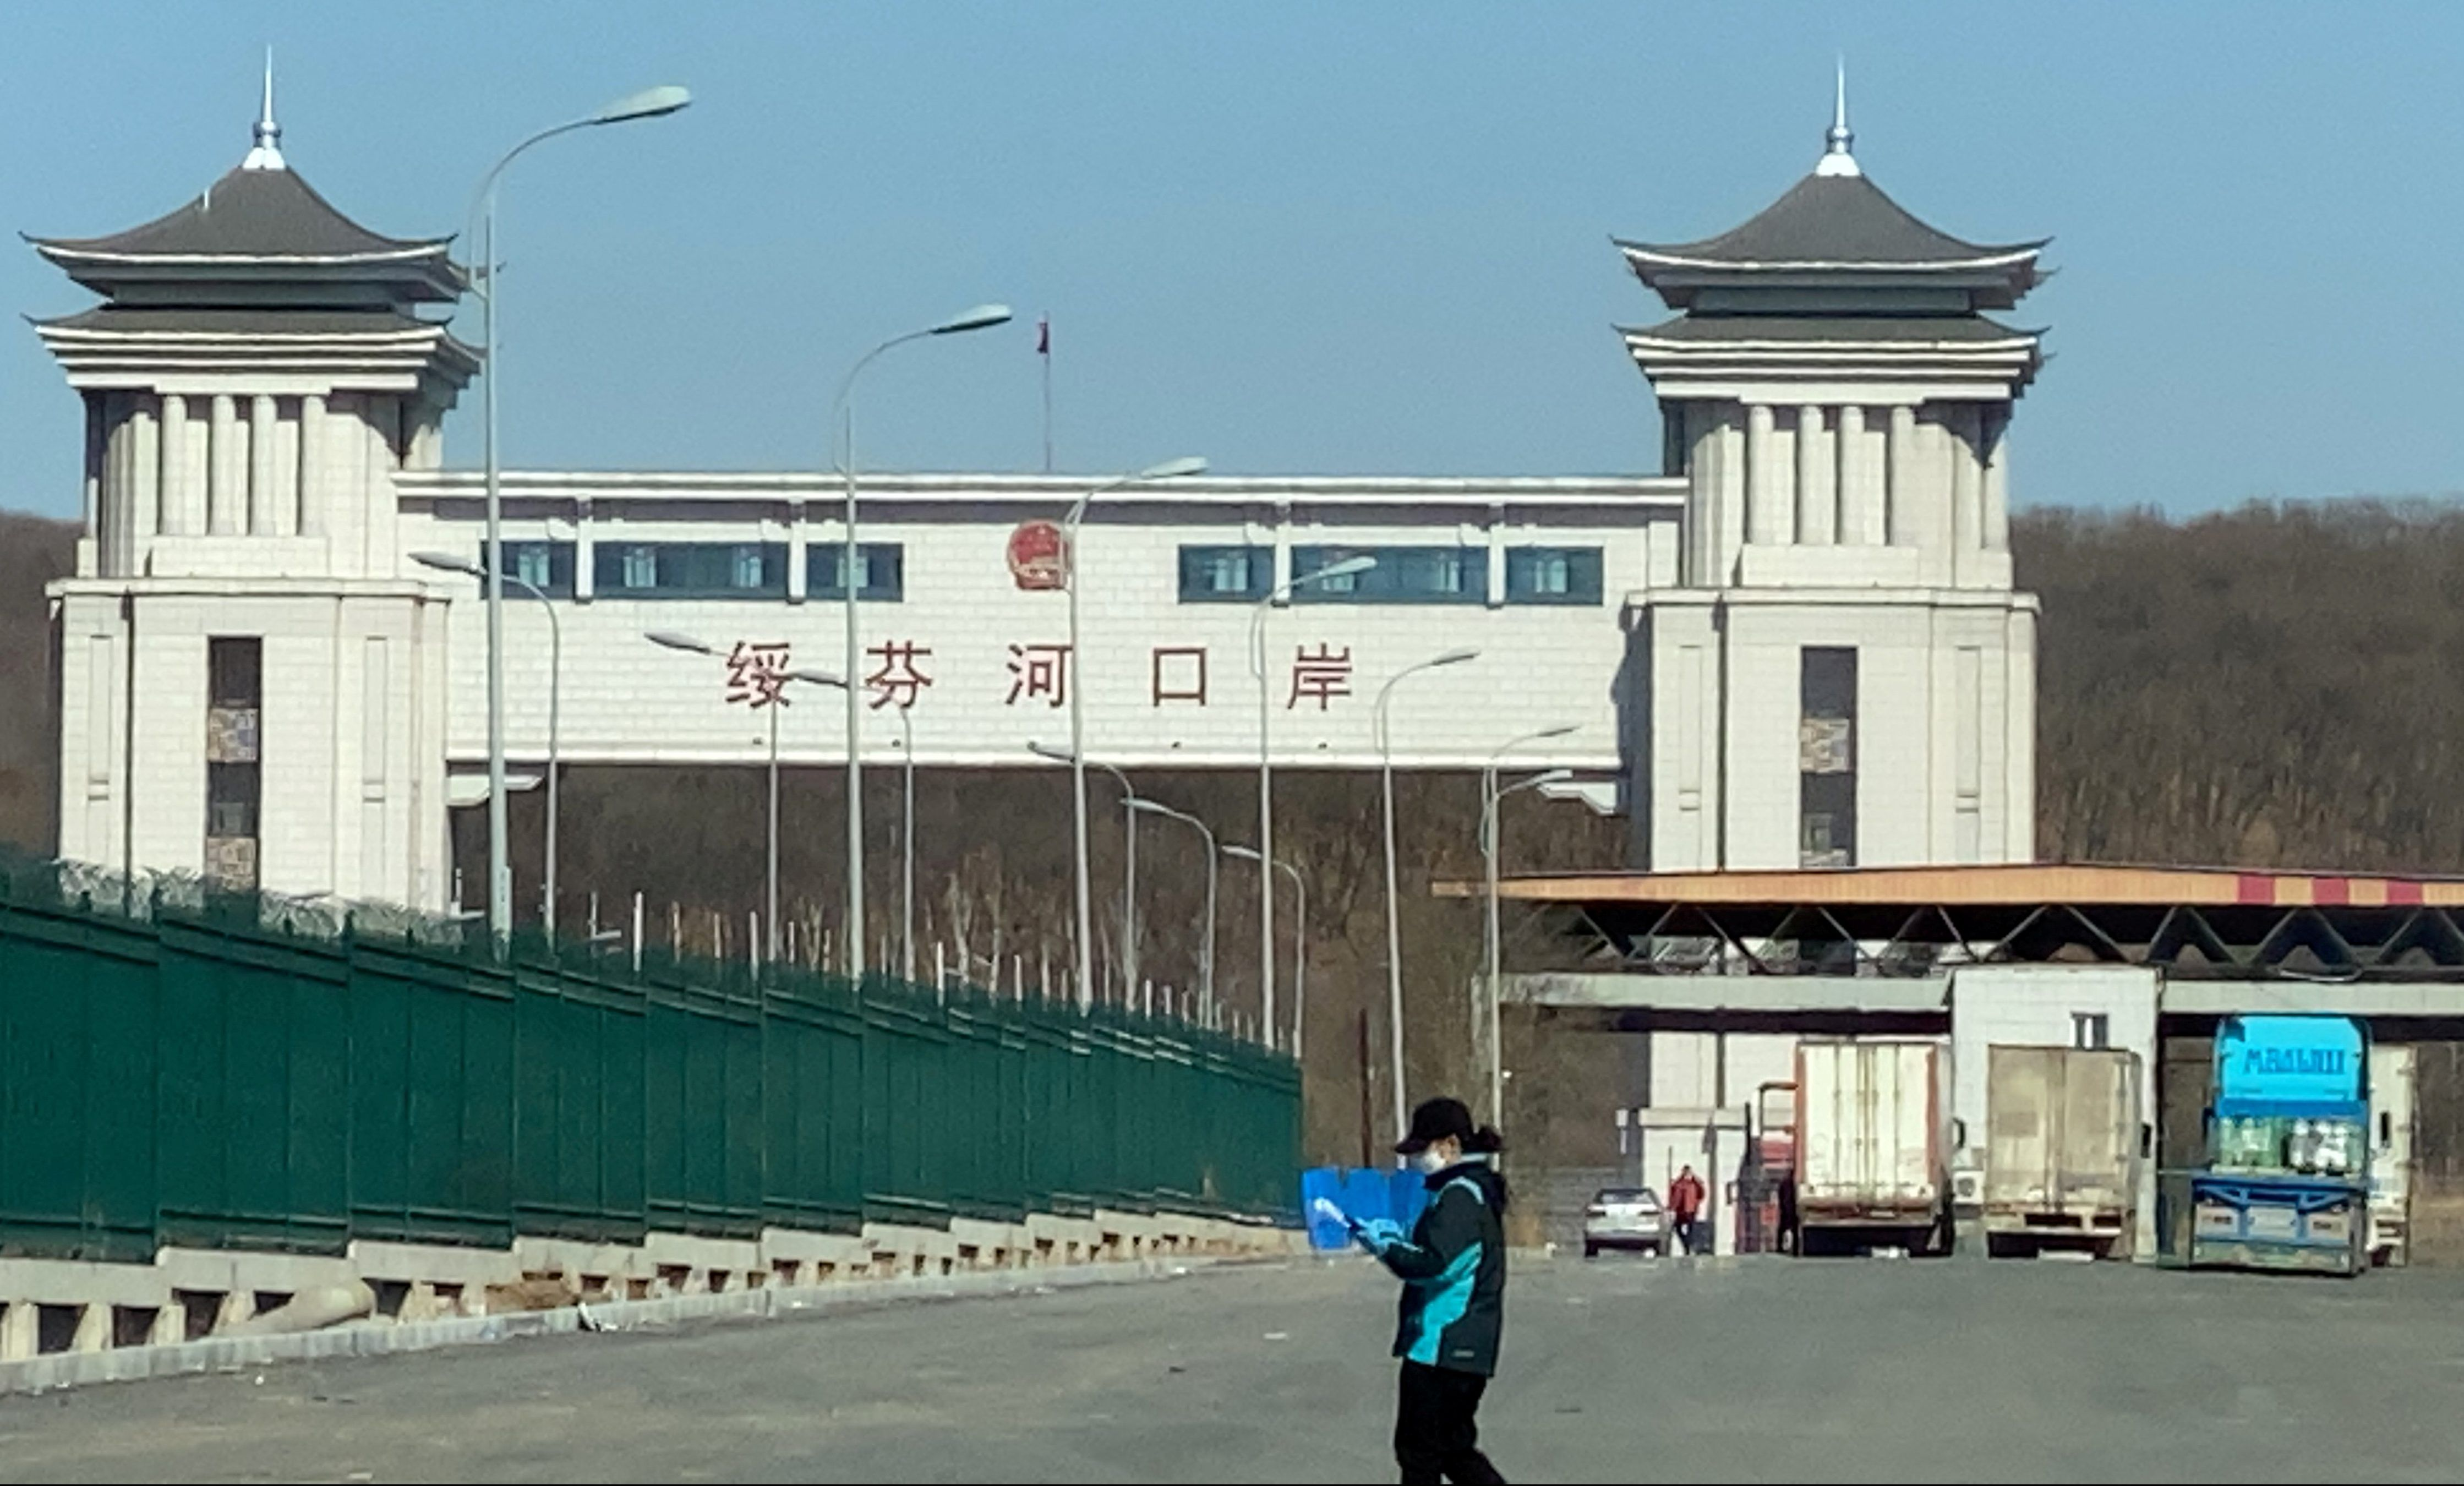 China is playing lockdown whack-a-mole in its battle against a second wave of Covid-19 cases